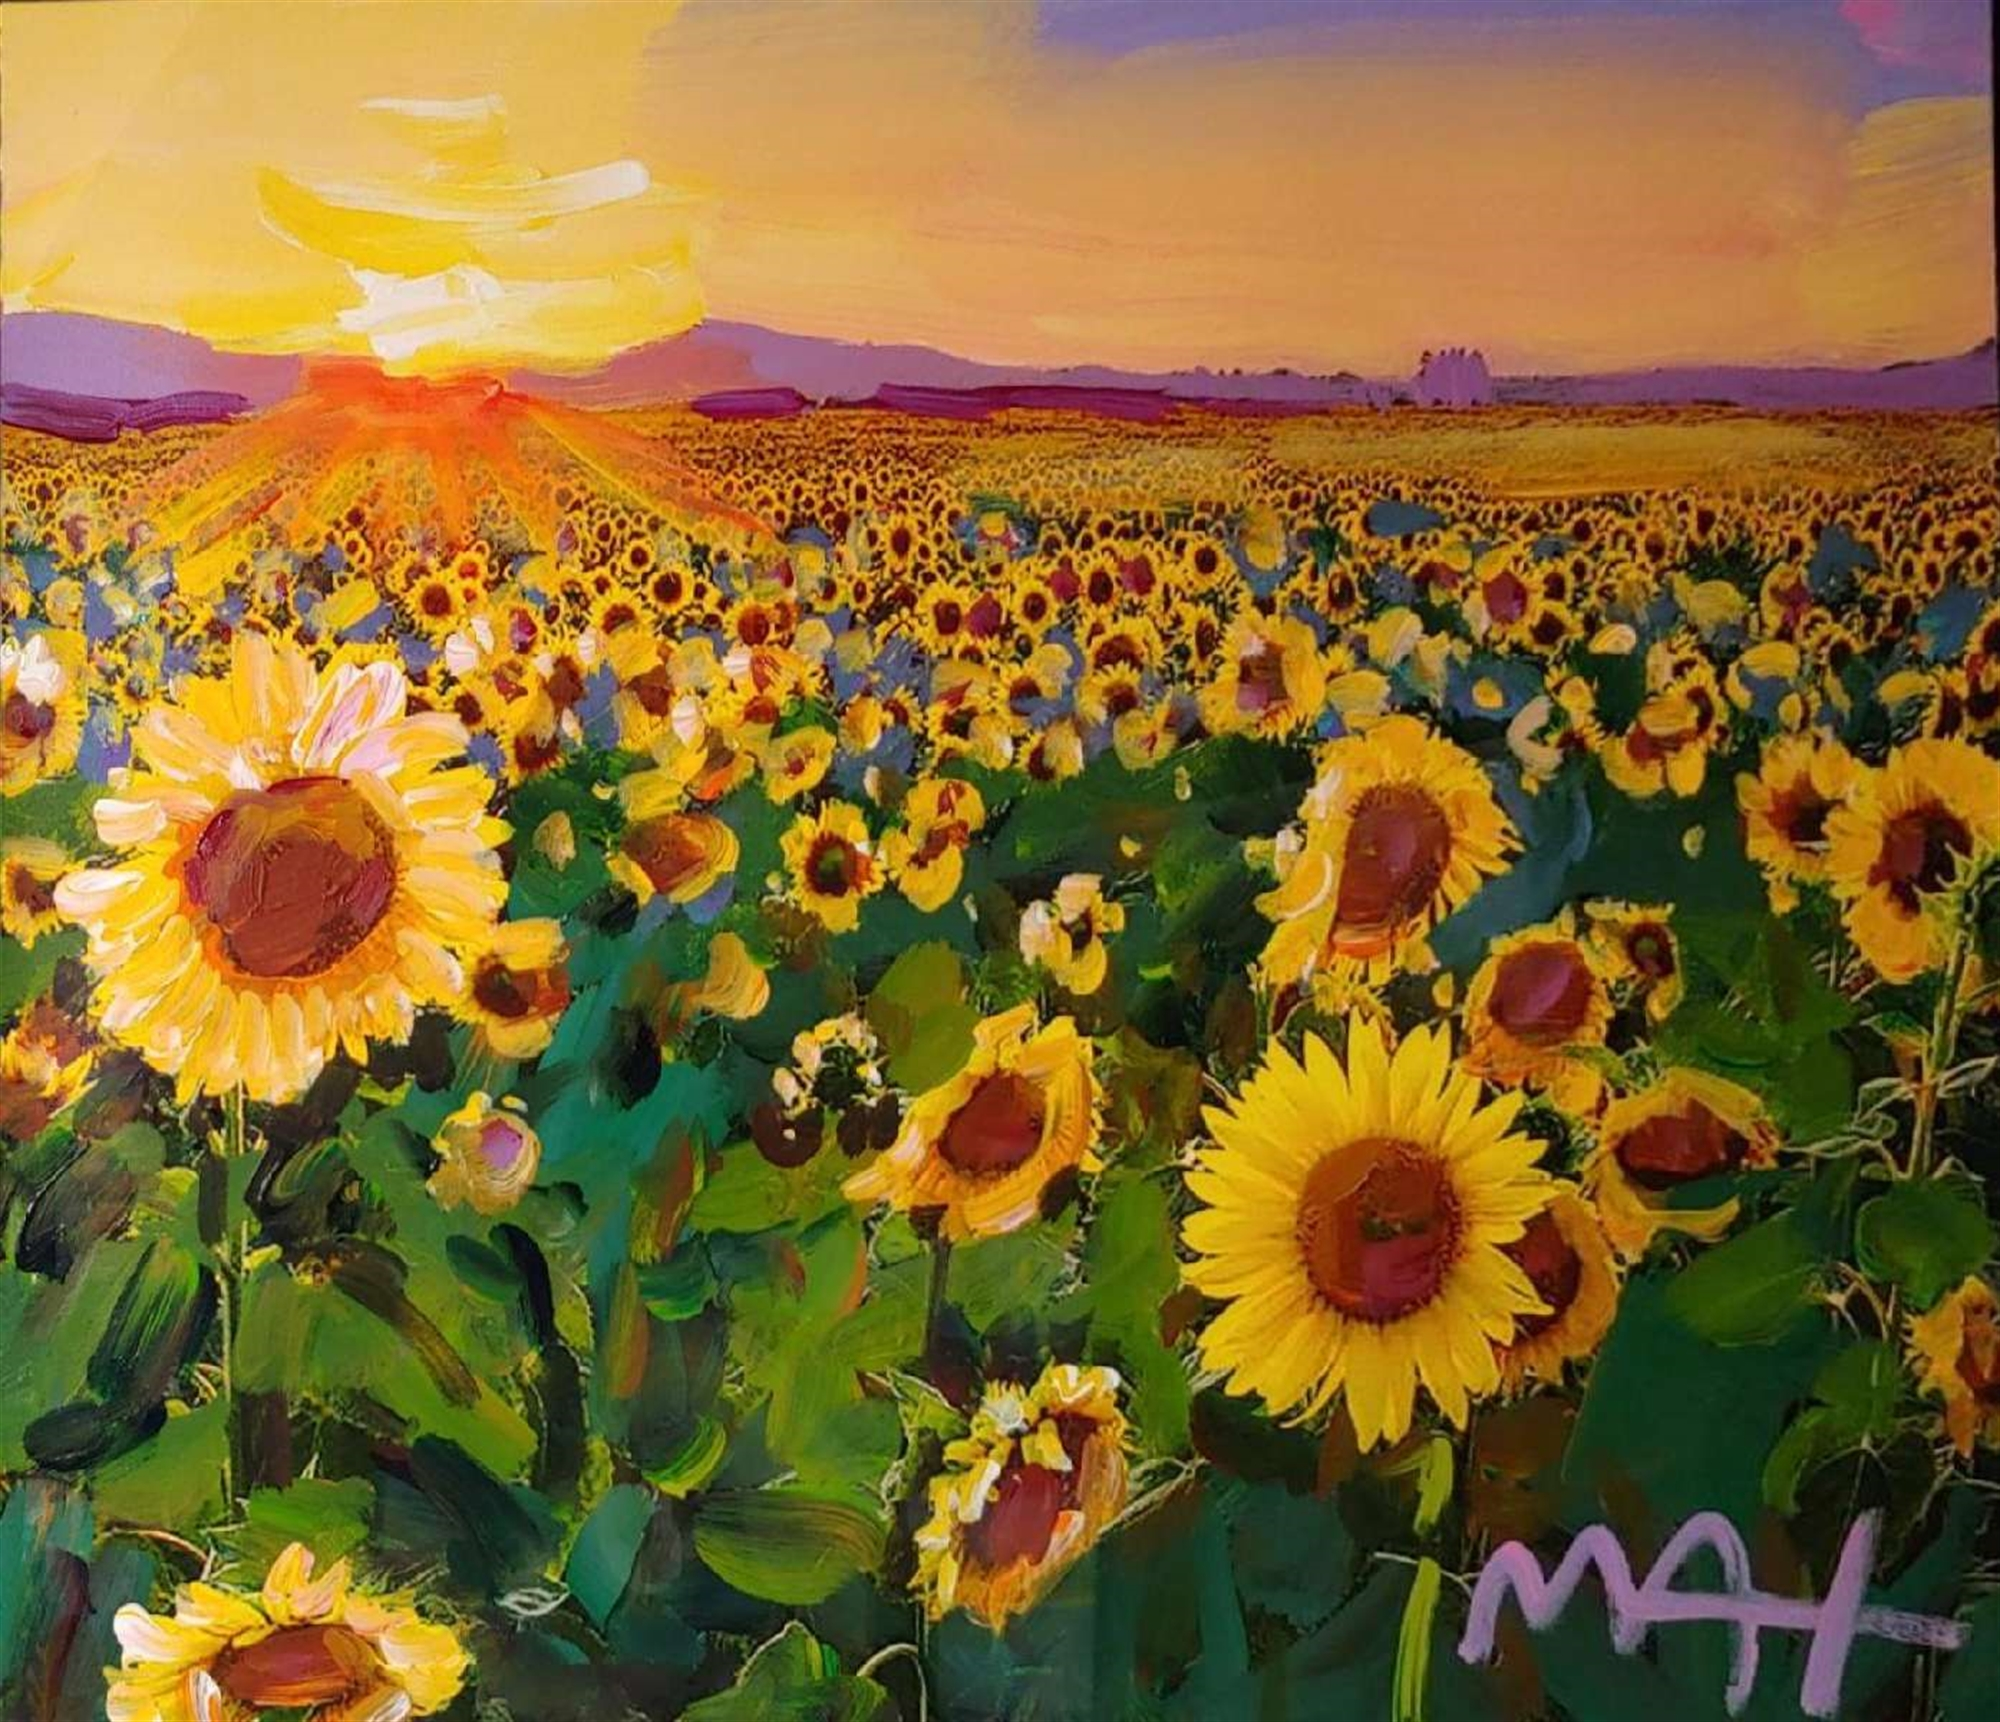 SUNFLOWER by Peter Max